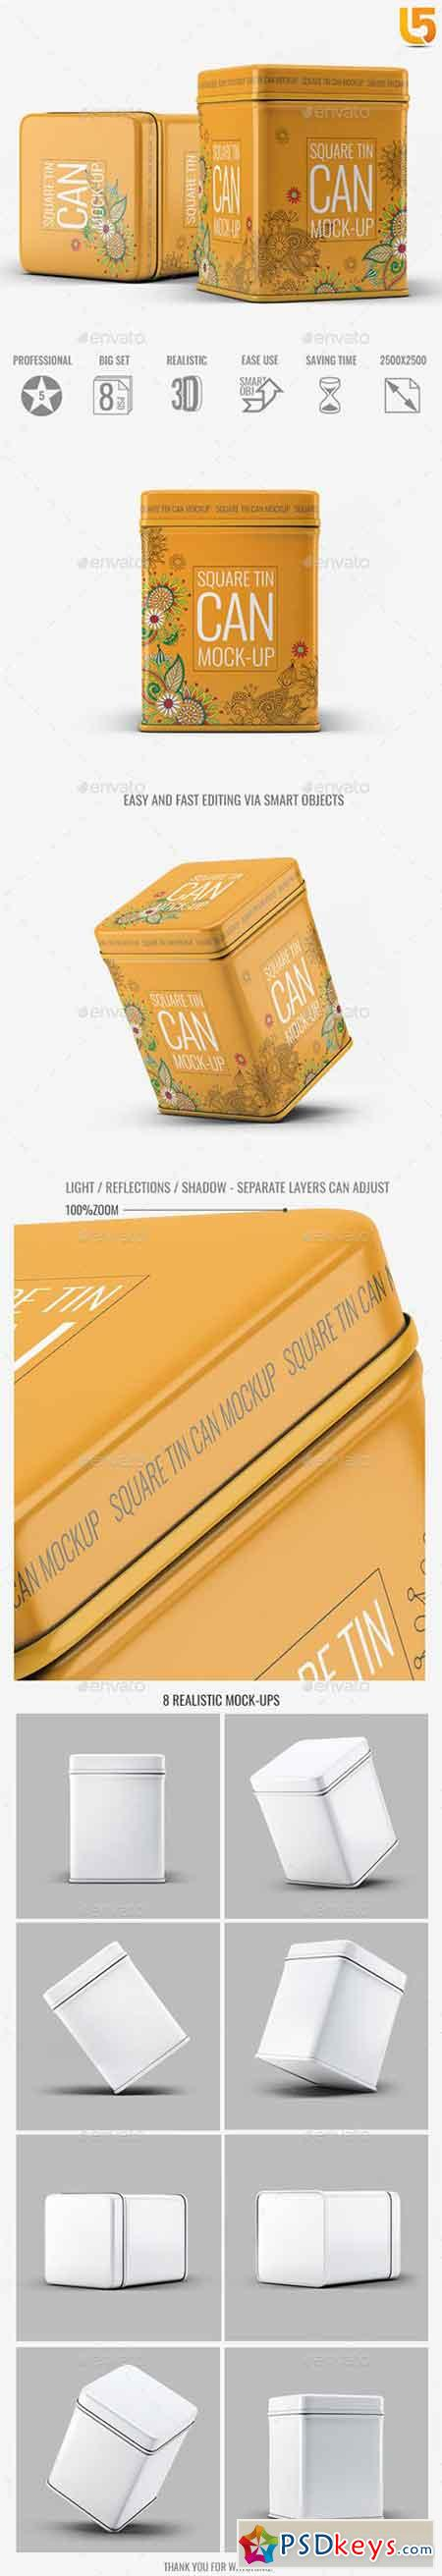 Square Tin Can Mock-Up 20413173